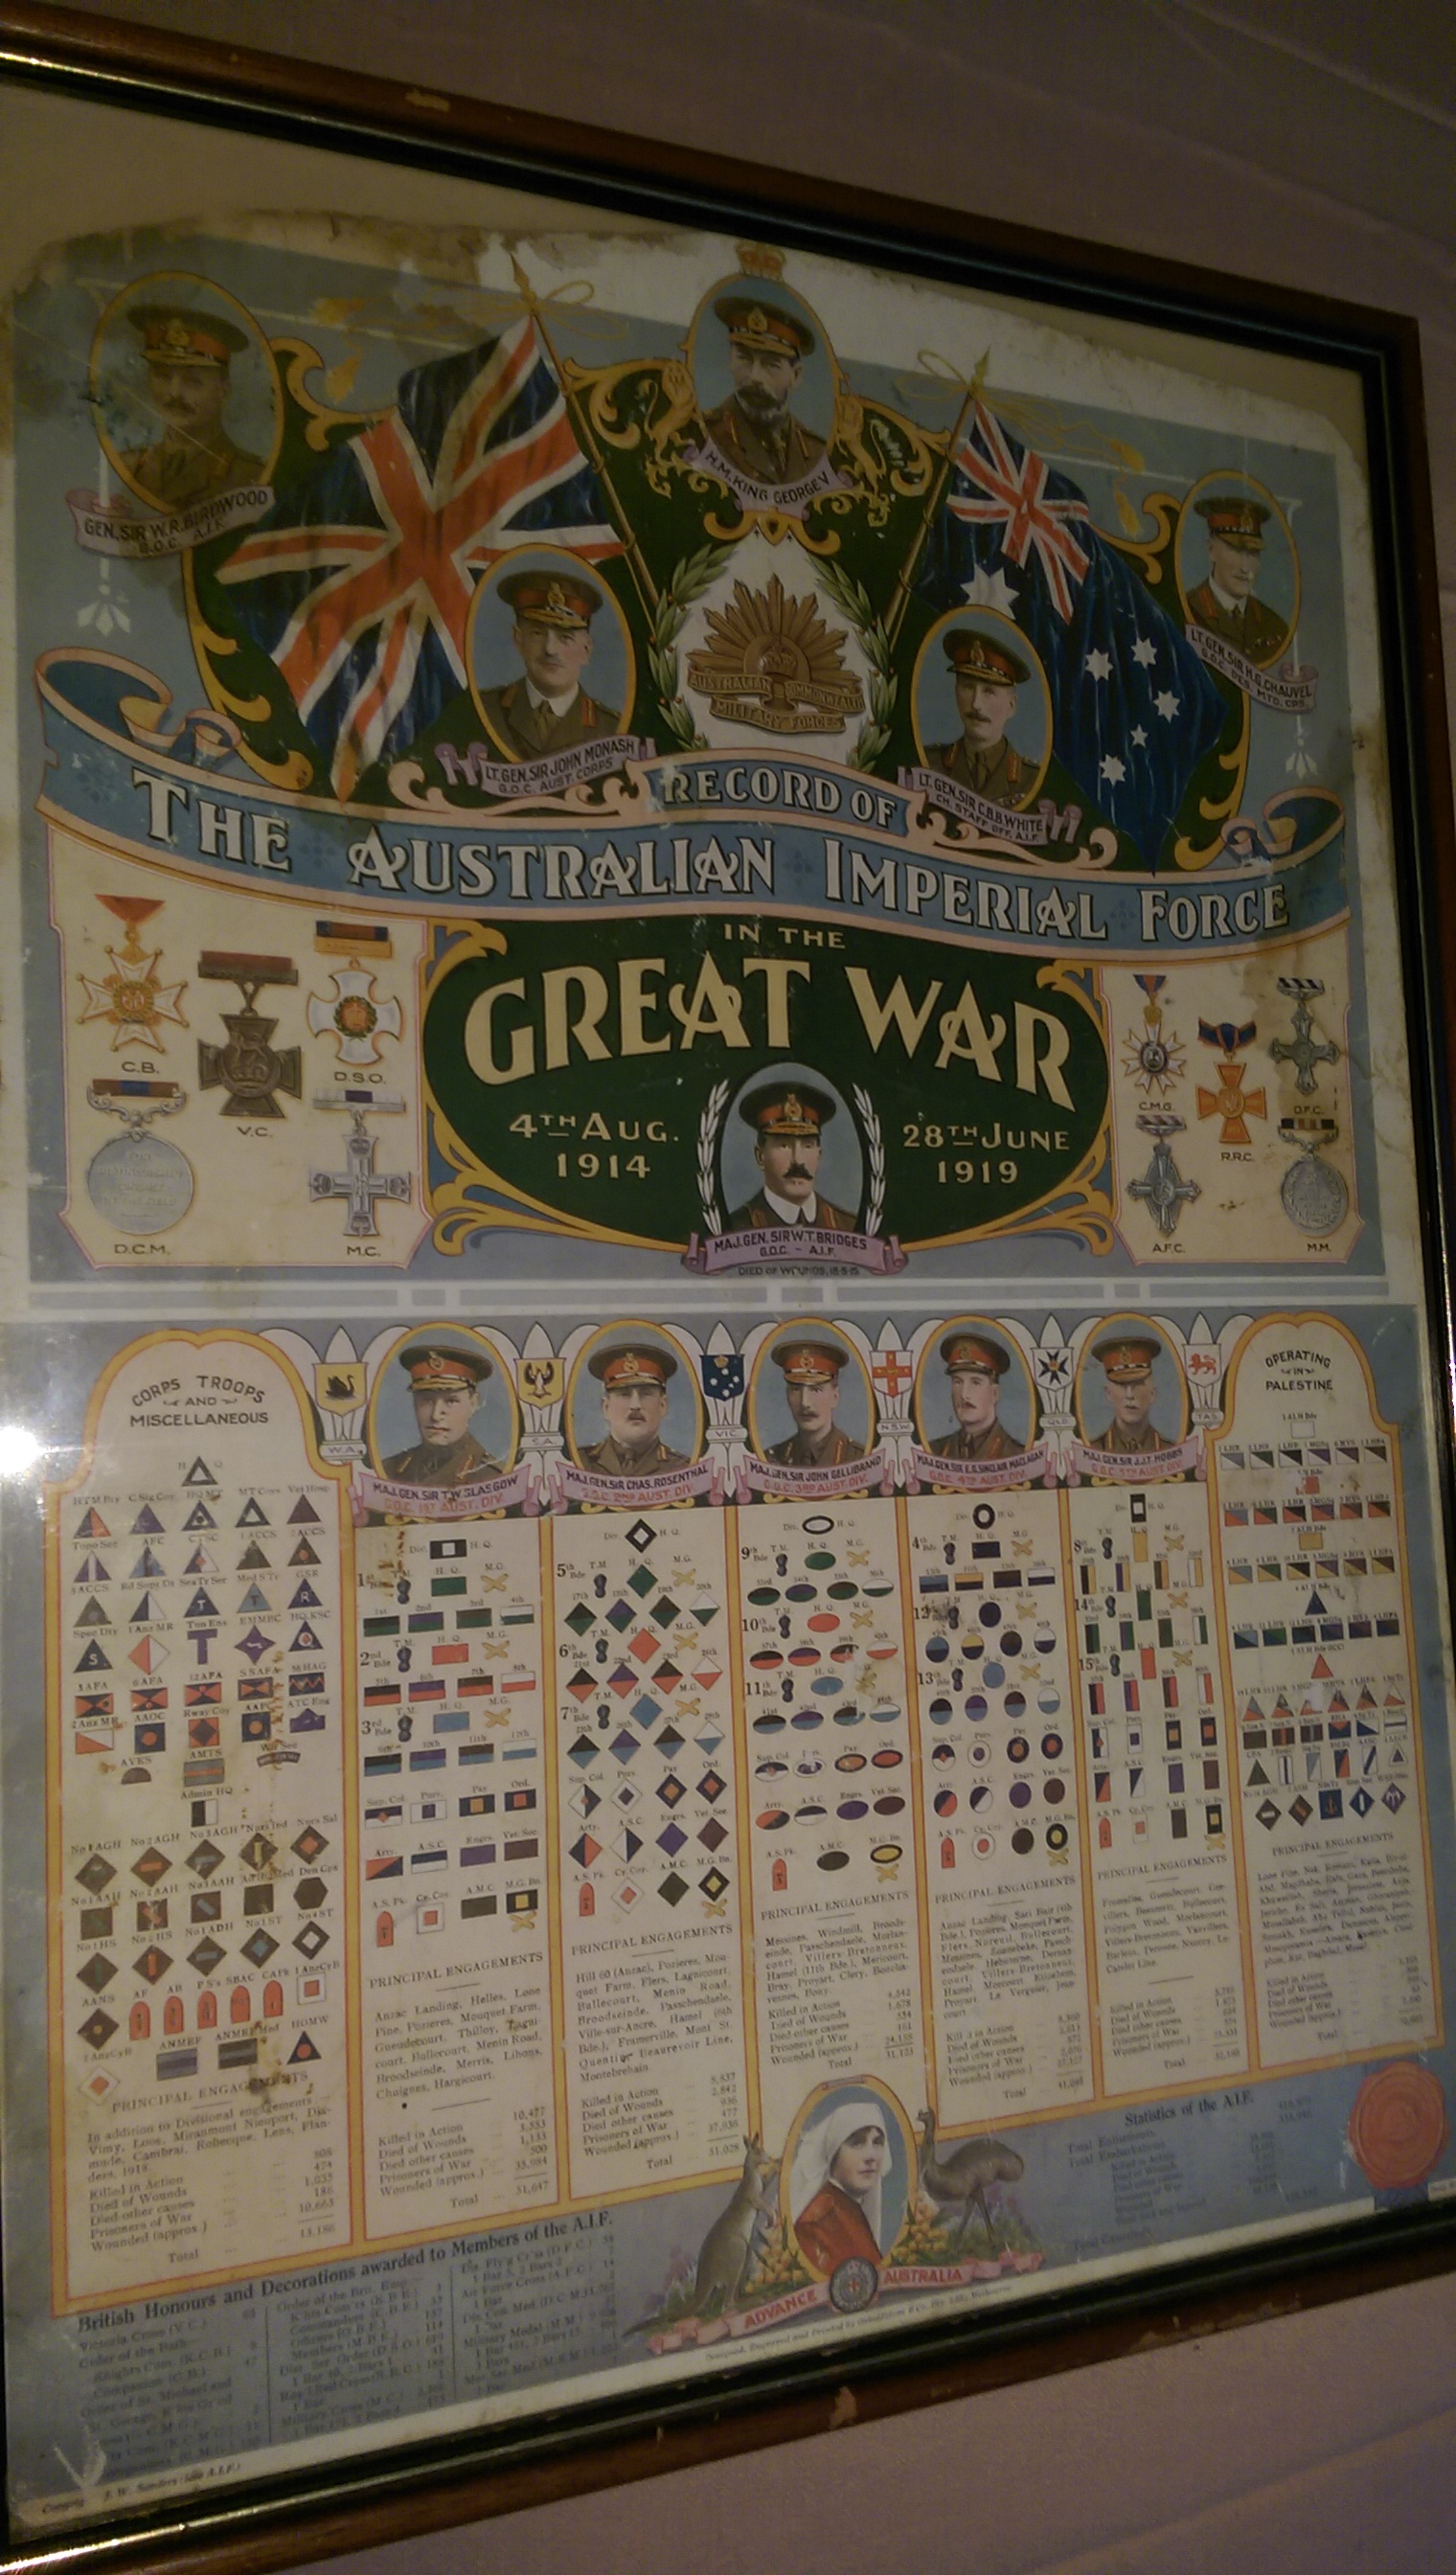 GREAT WAR POSTER SHOWS ALL THE ARMY PEOPLE THAT CLEMENTINA MARSHALL WORKED WITH & MET DURING HER  NU